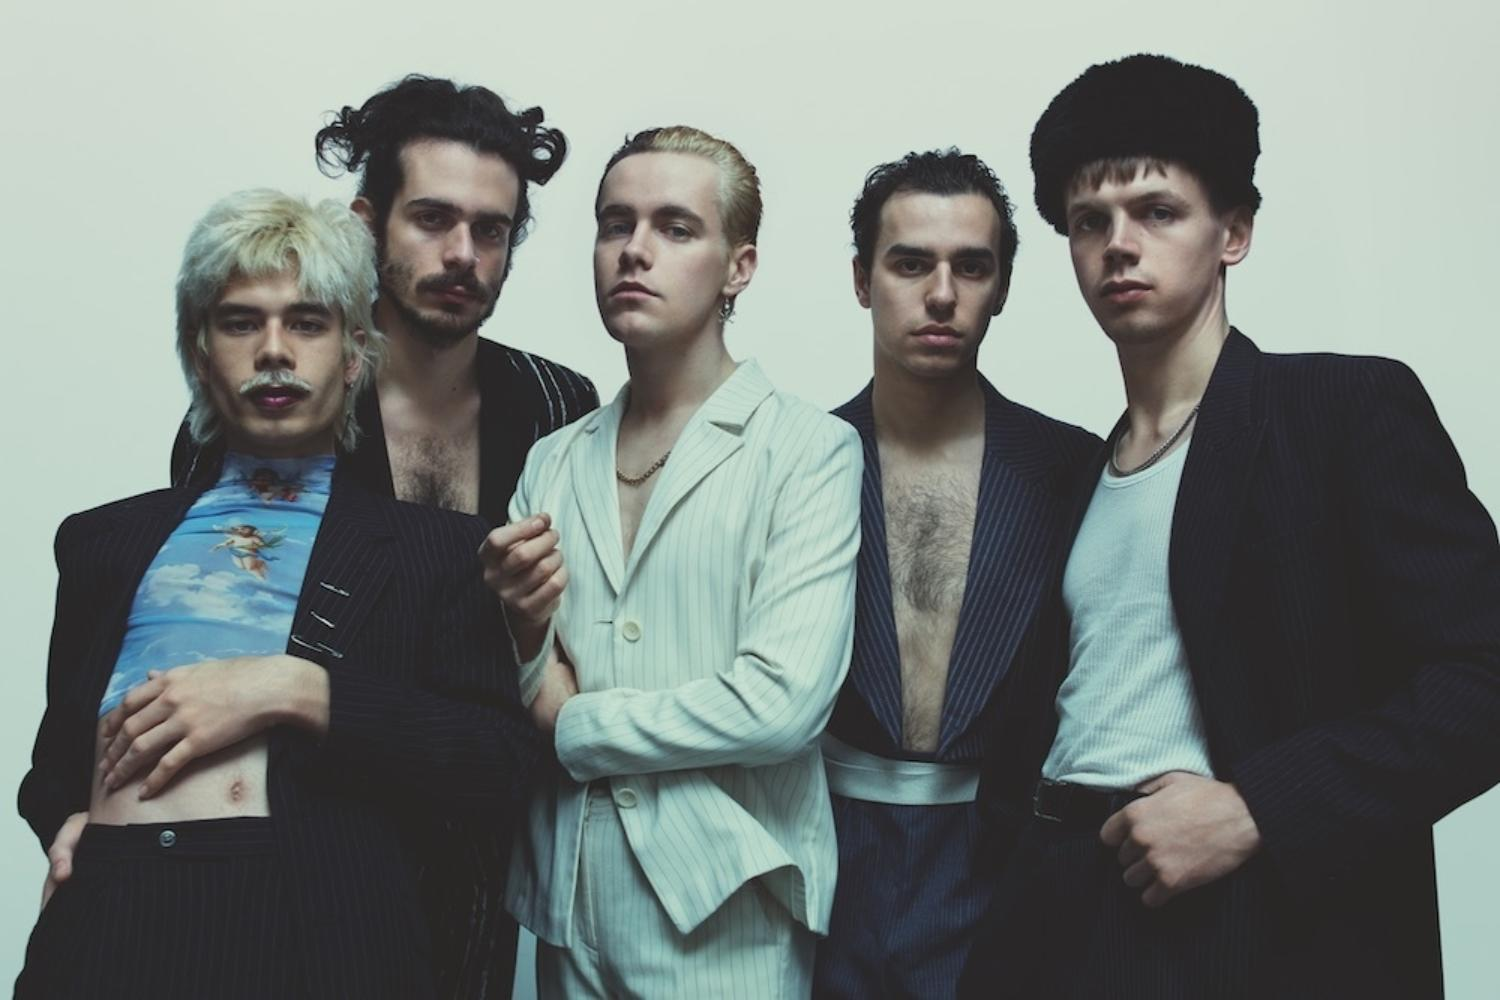 HMLTD release 'Mikey's Song' video